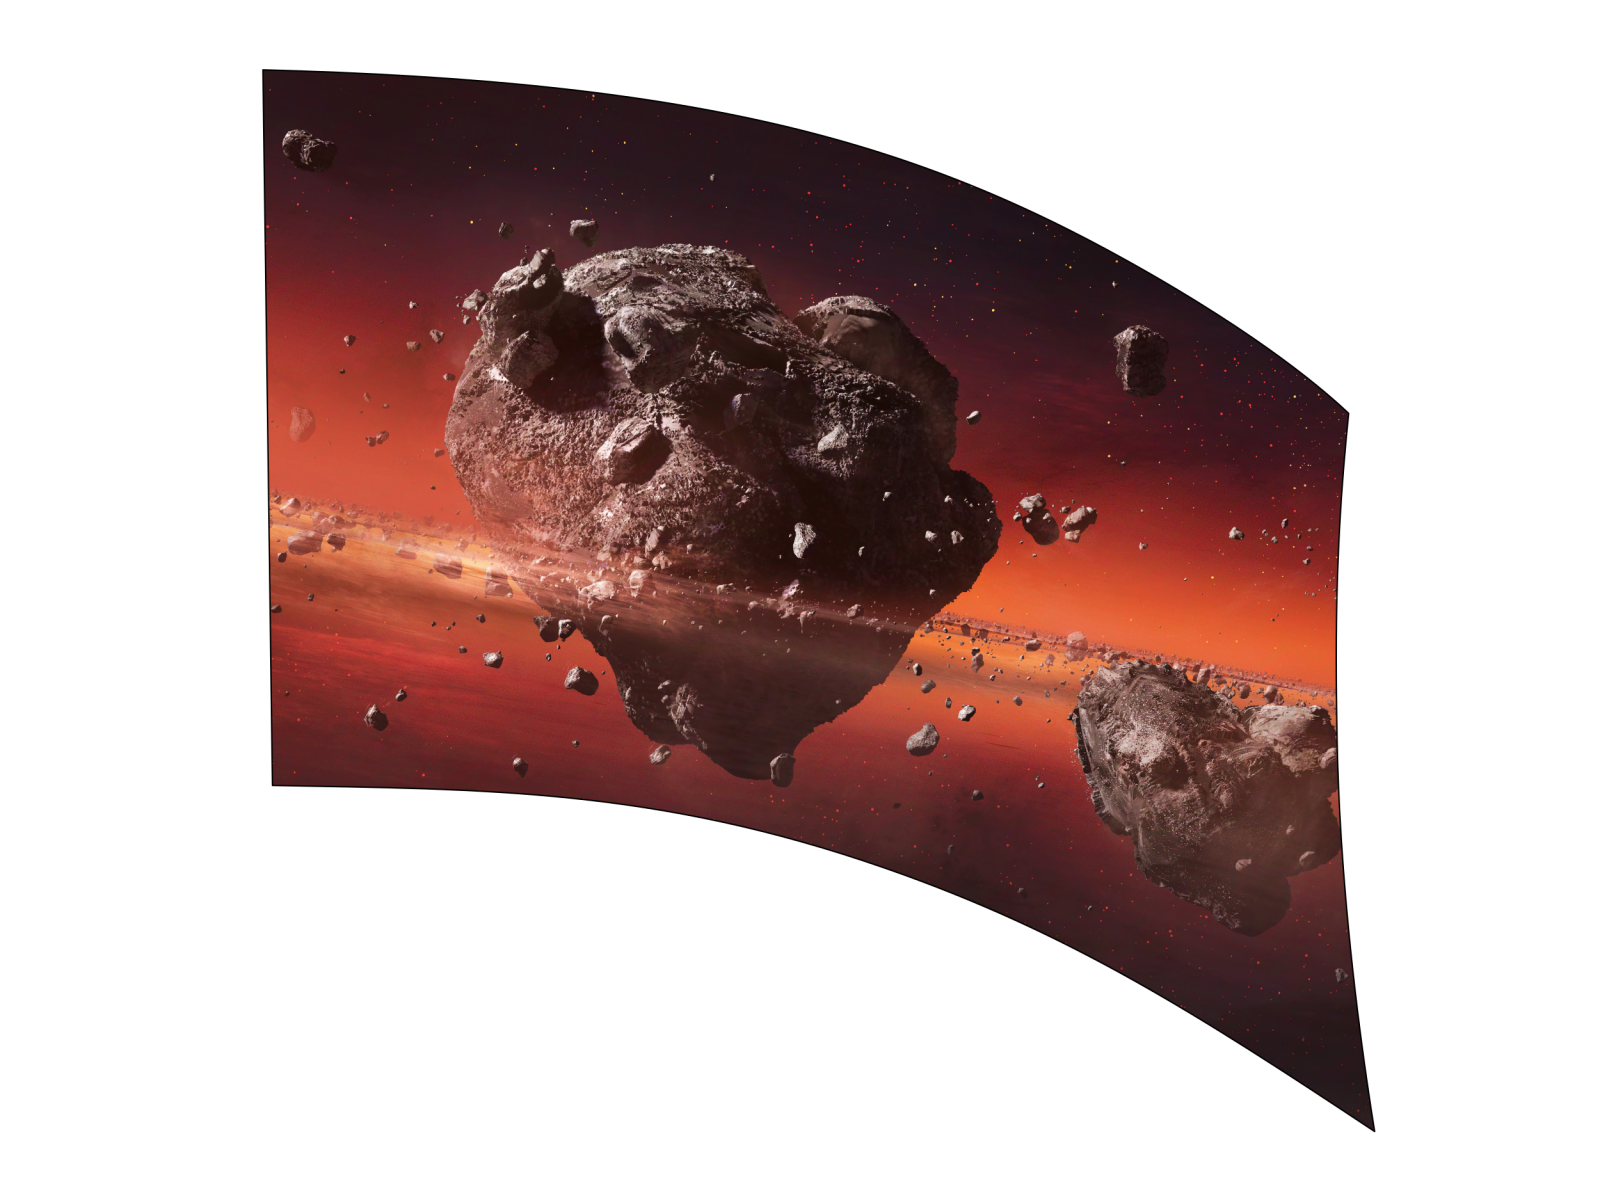 050209s - 36x54 Standard Asteroid